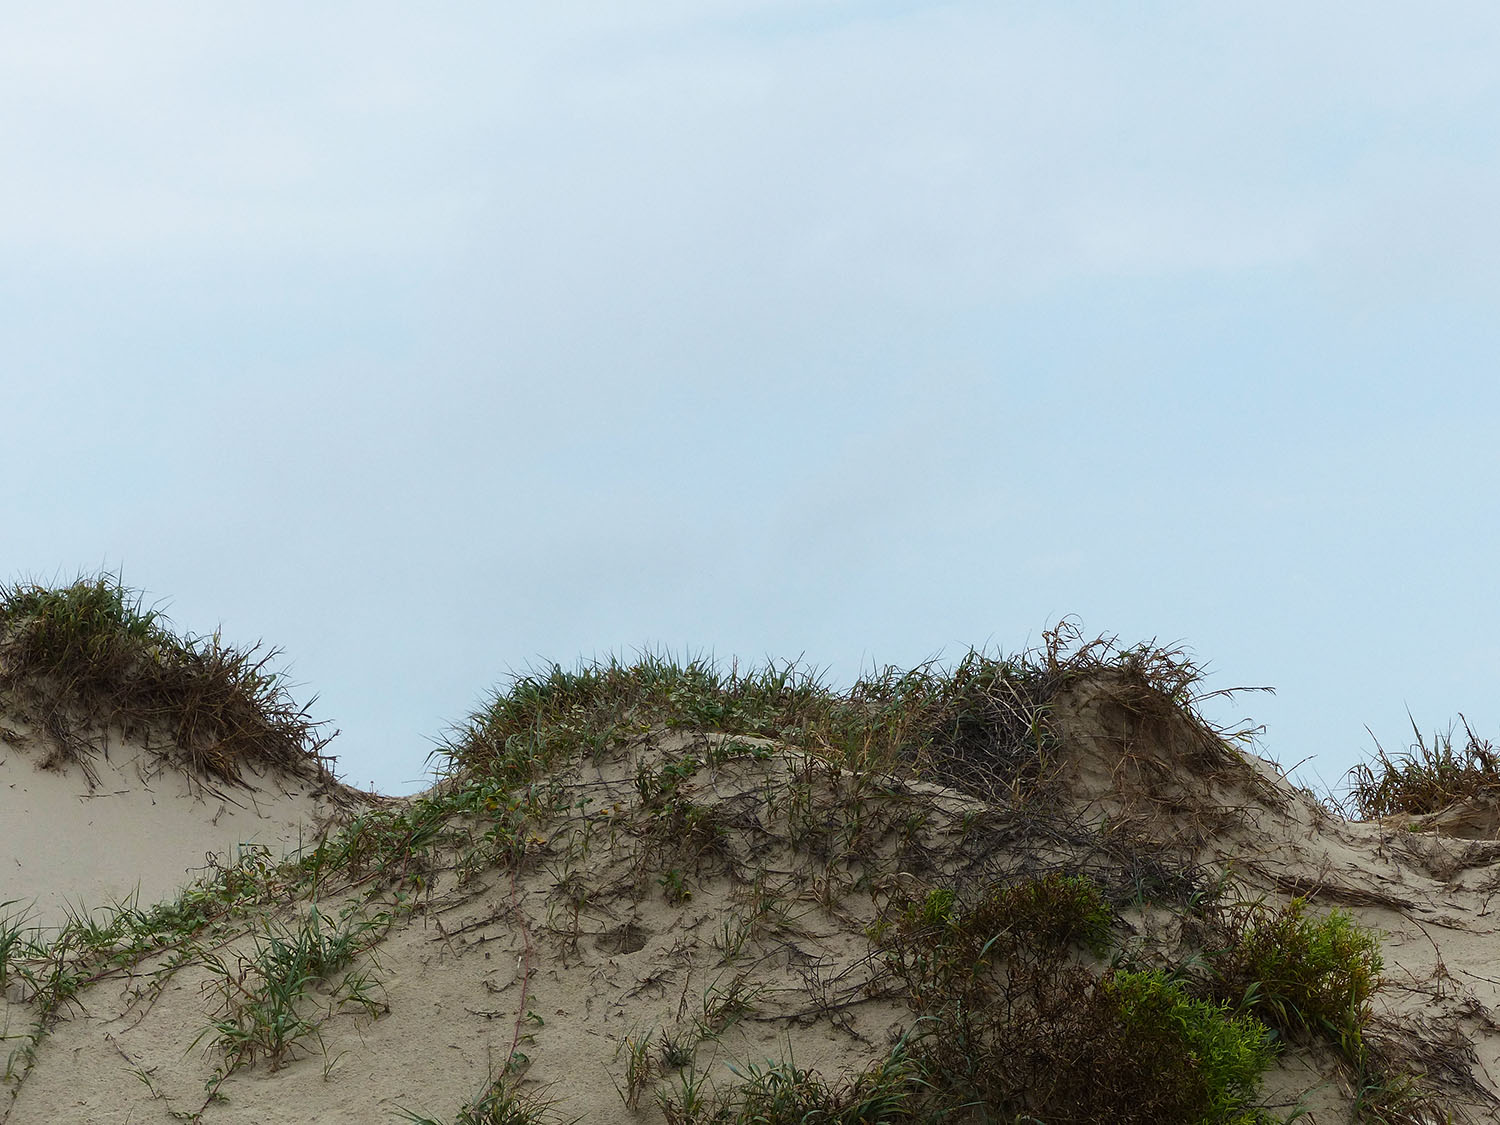 Sand dunes at Mustang Island State Park